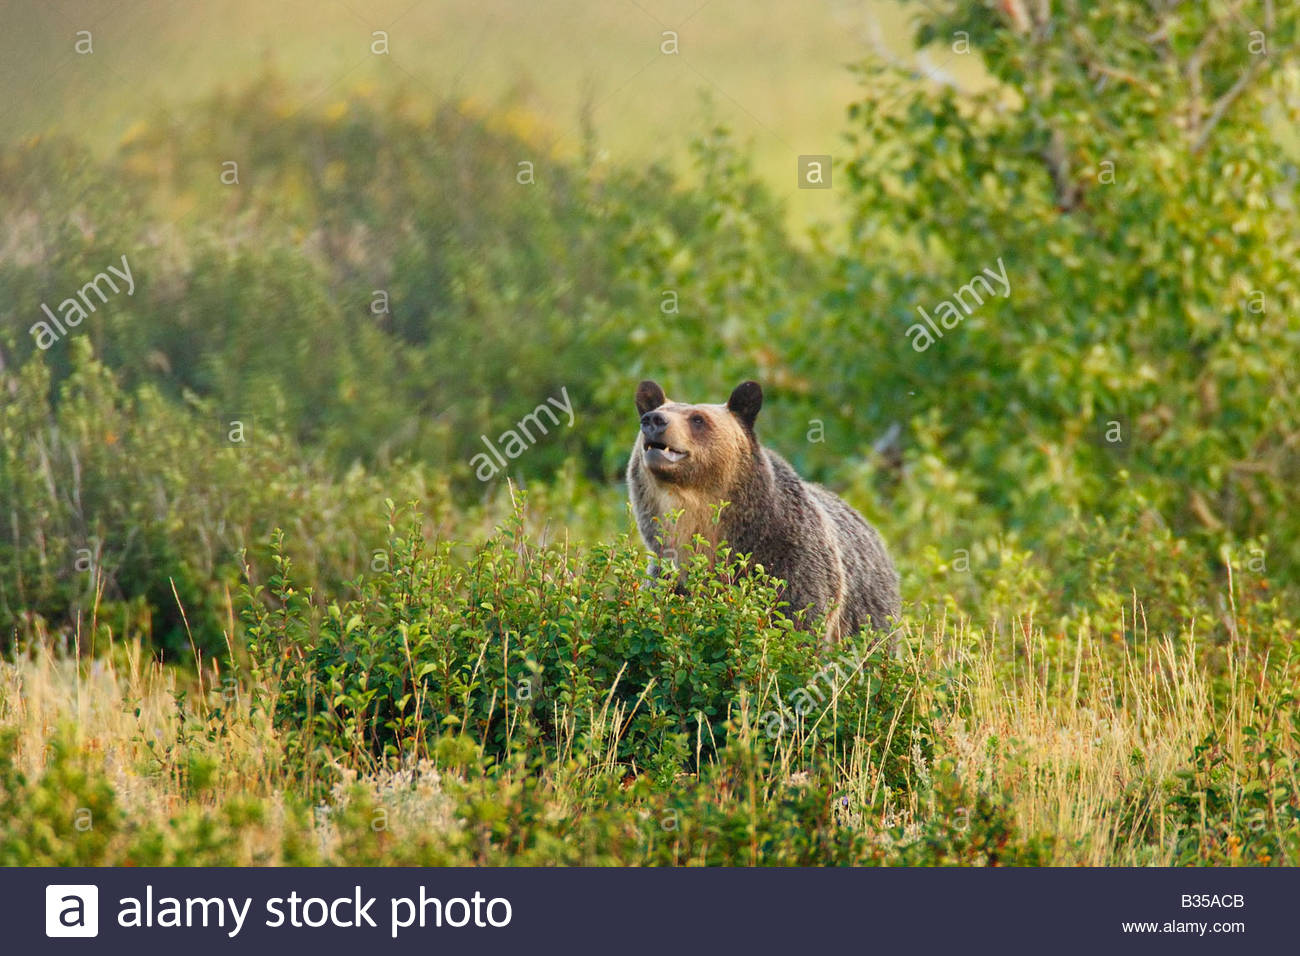 A grizzly bear (Ursus arctos) hunts for food in a meadow located in the Many Glacier section of Glacier National - Stock Image